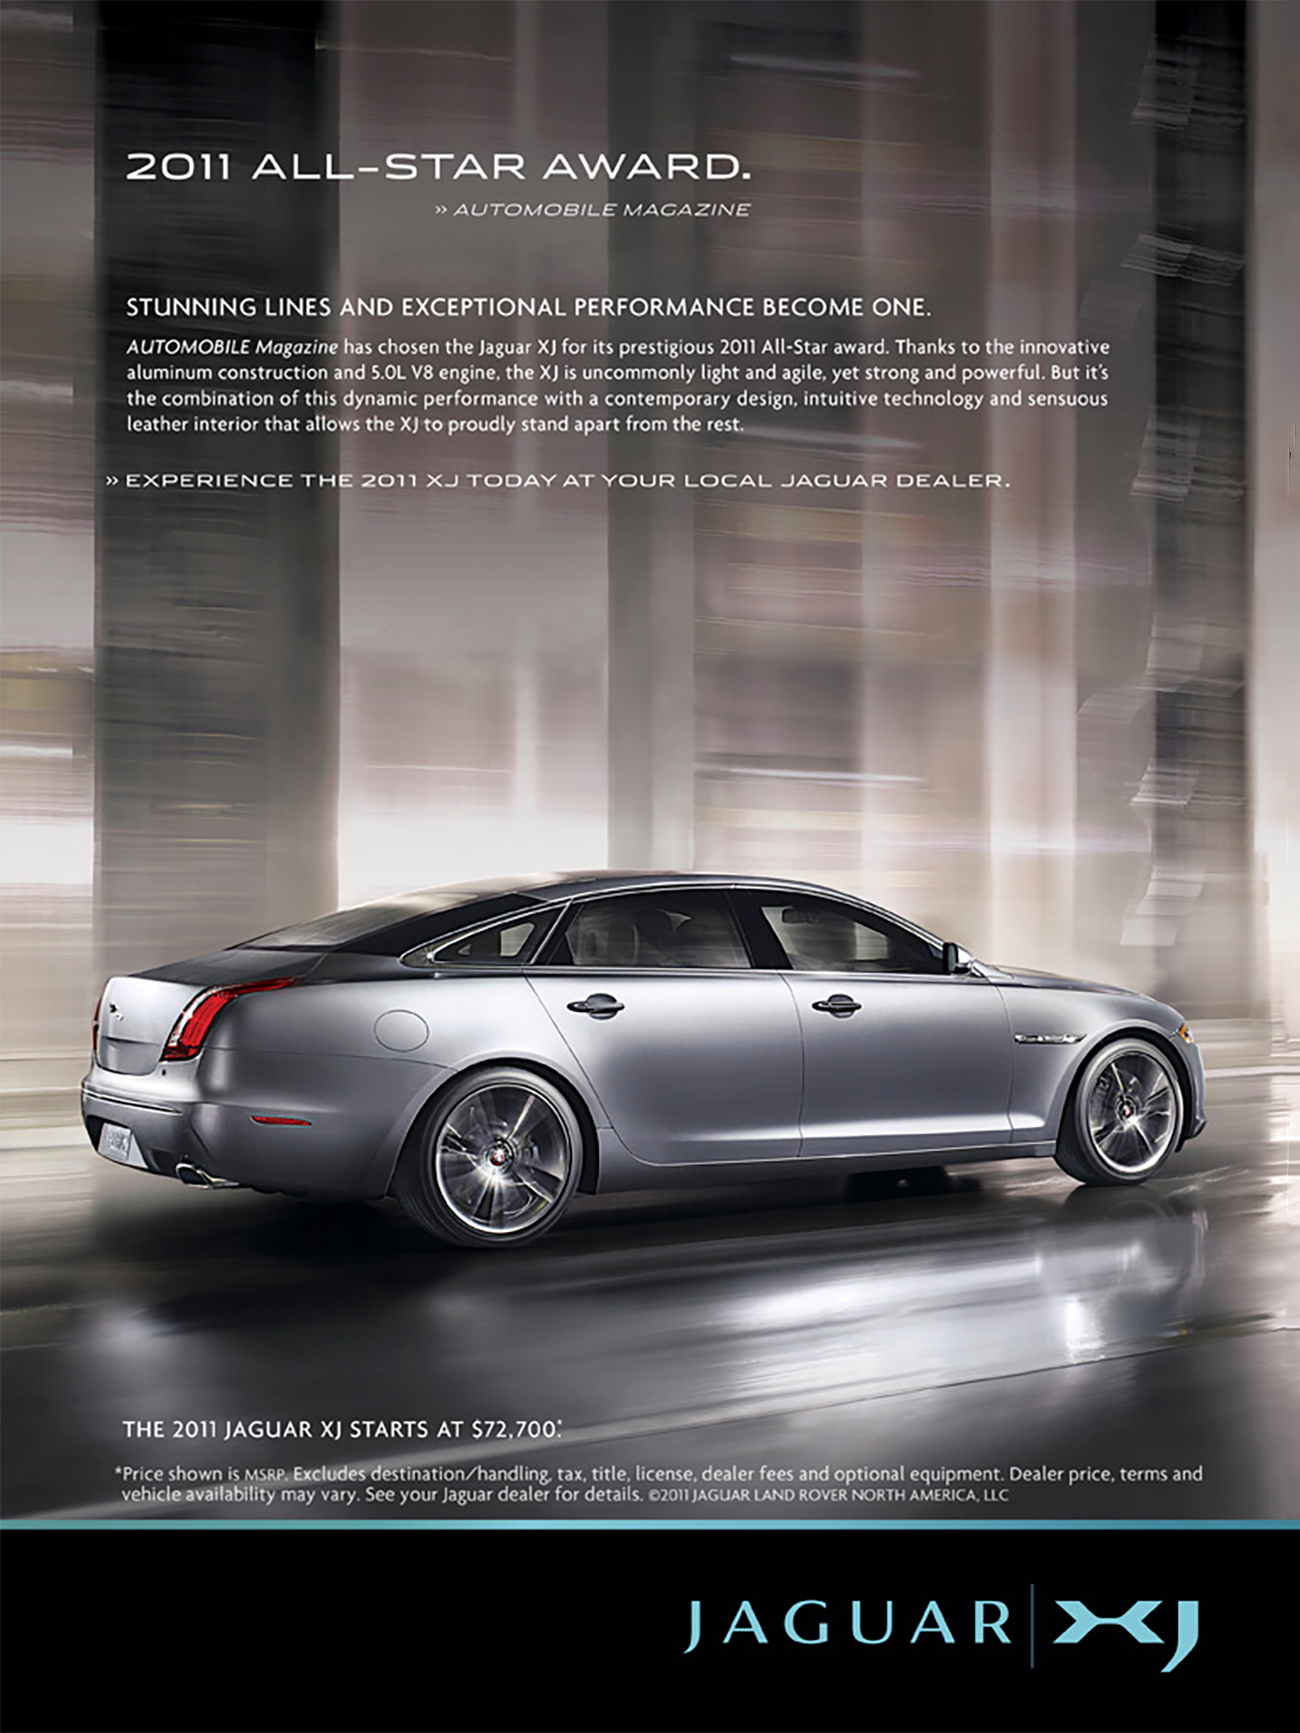 2011 Jaguar XJ Ad, Cars in Motion